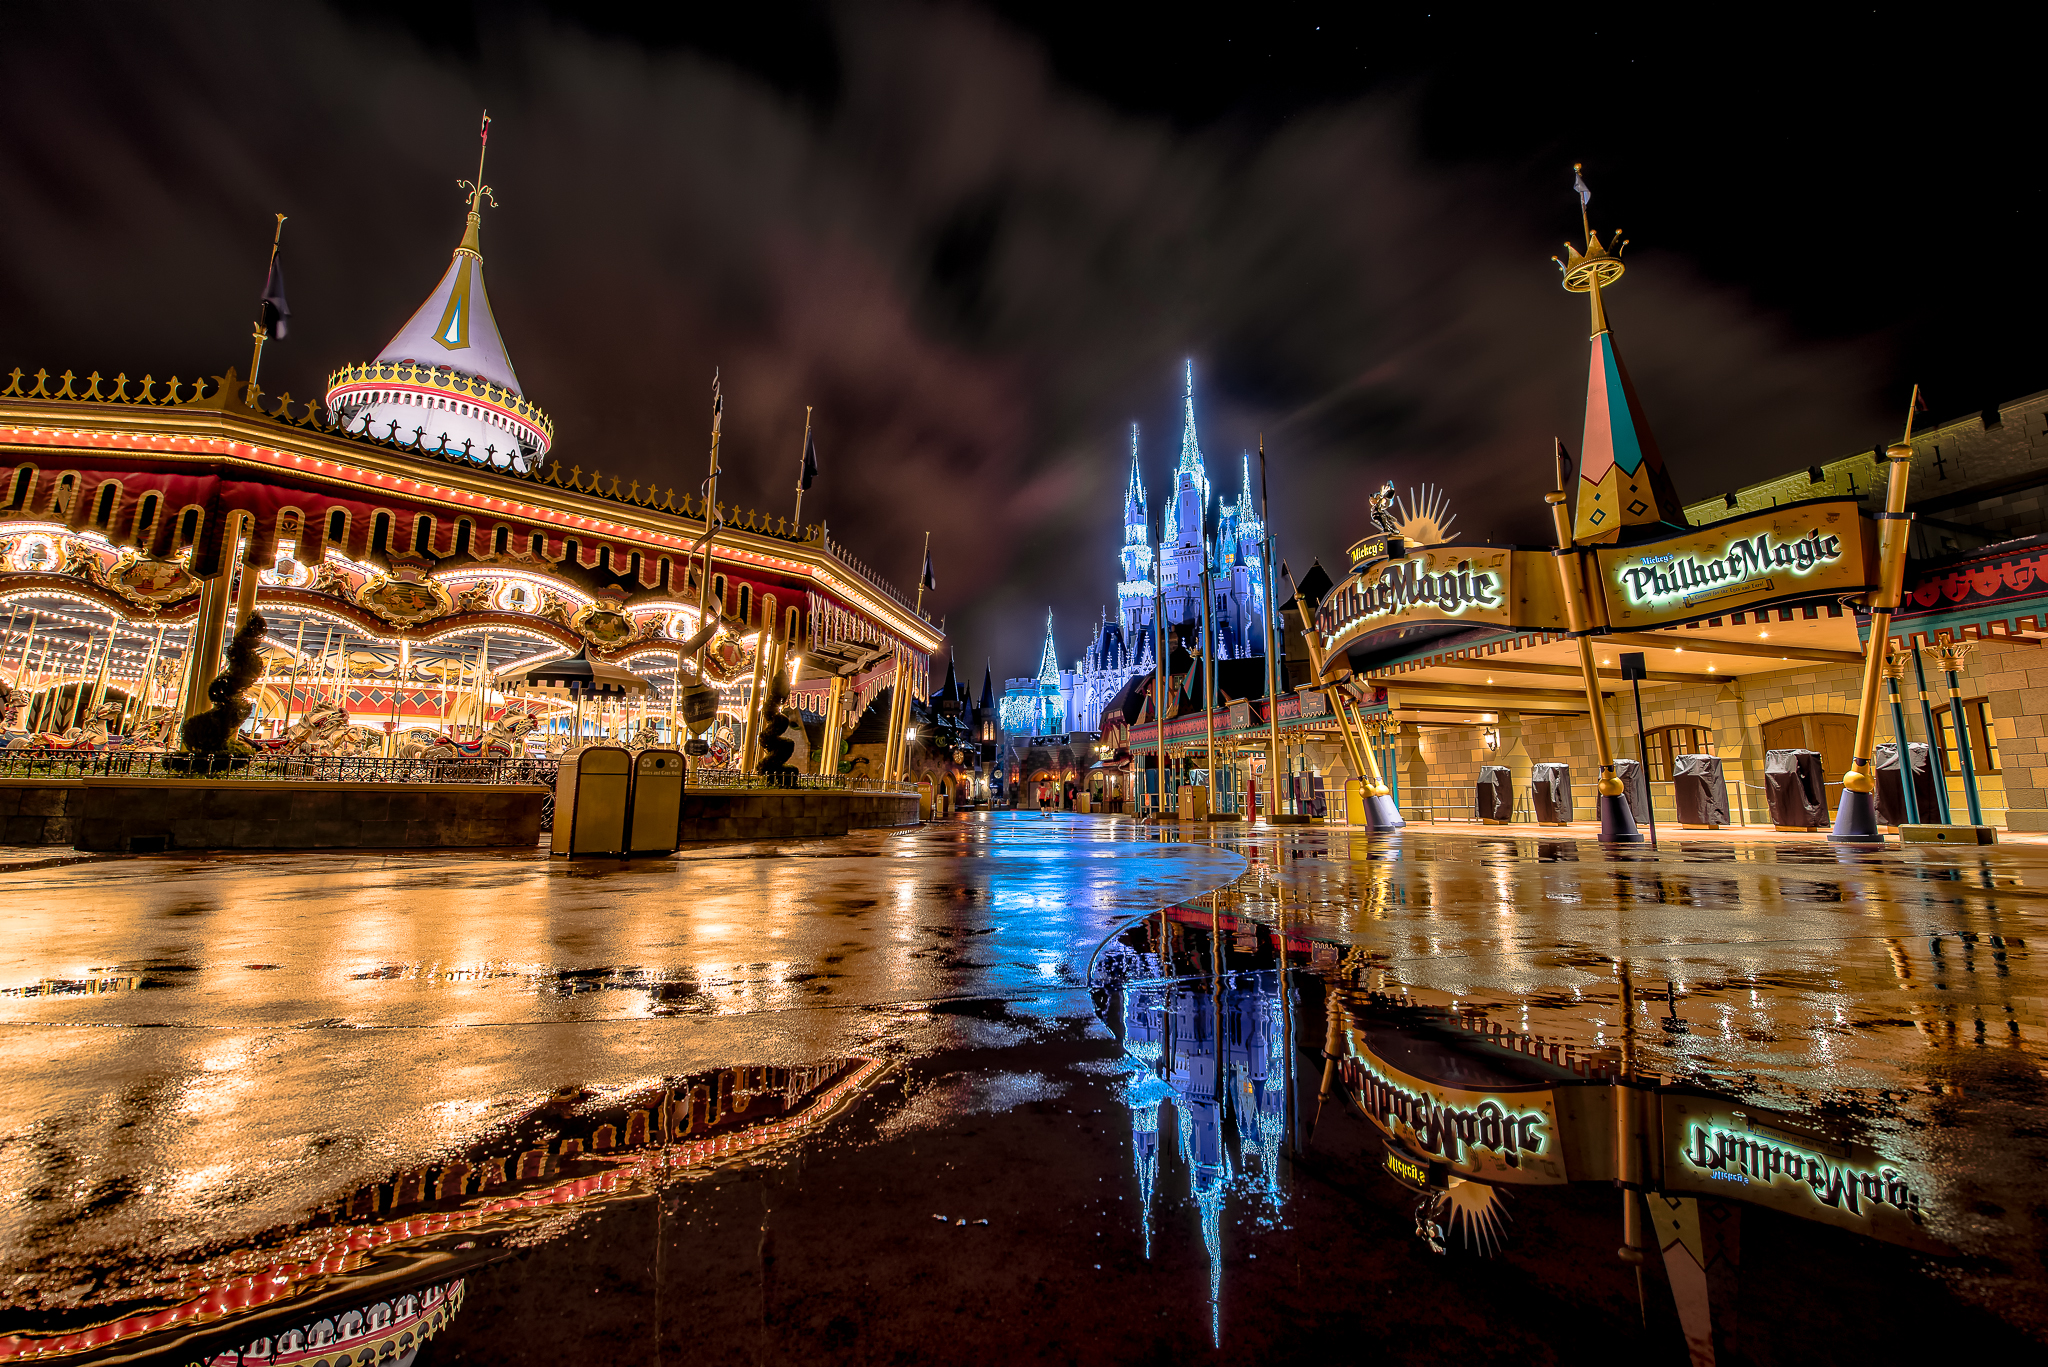 Reflections of Fantasyland